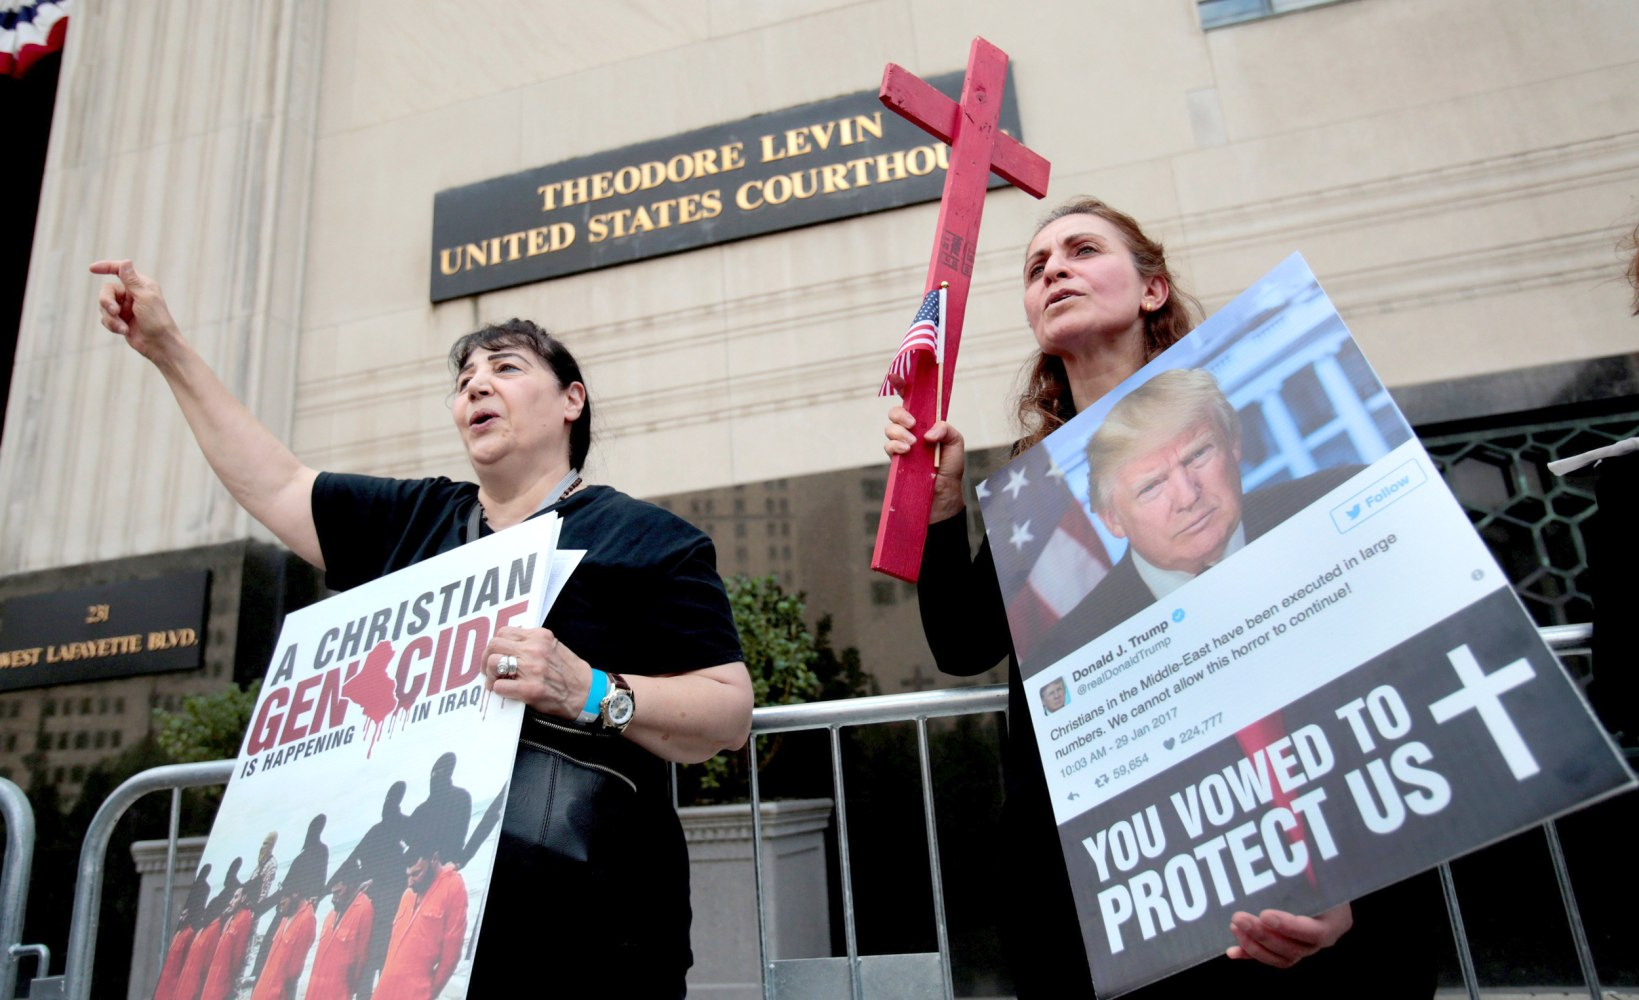 Federal Judge in Detroit Blocks Mass Deportation of Iraqis